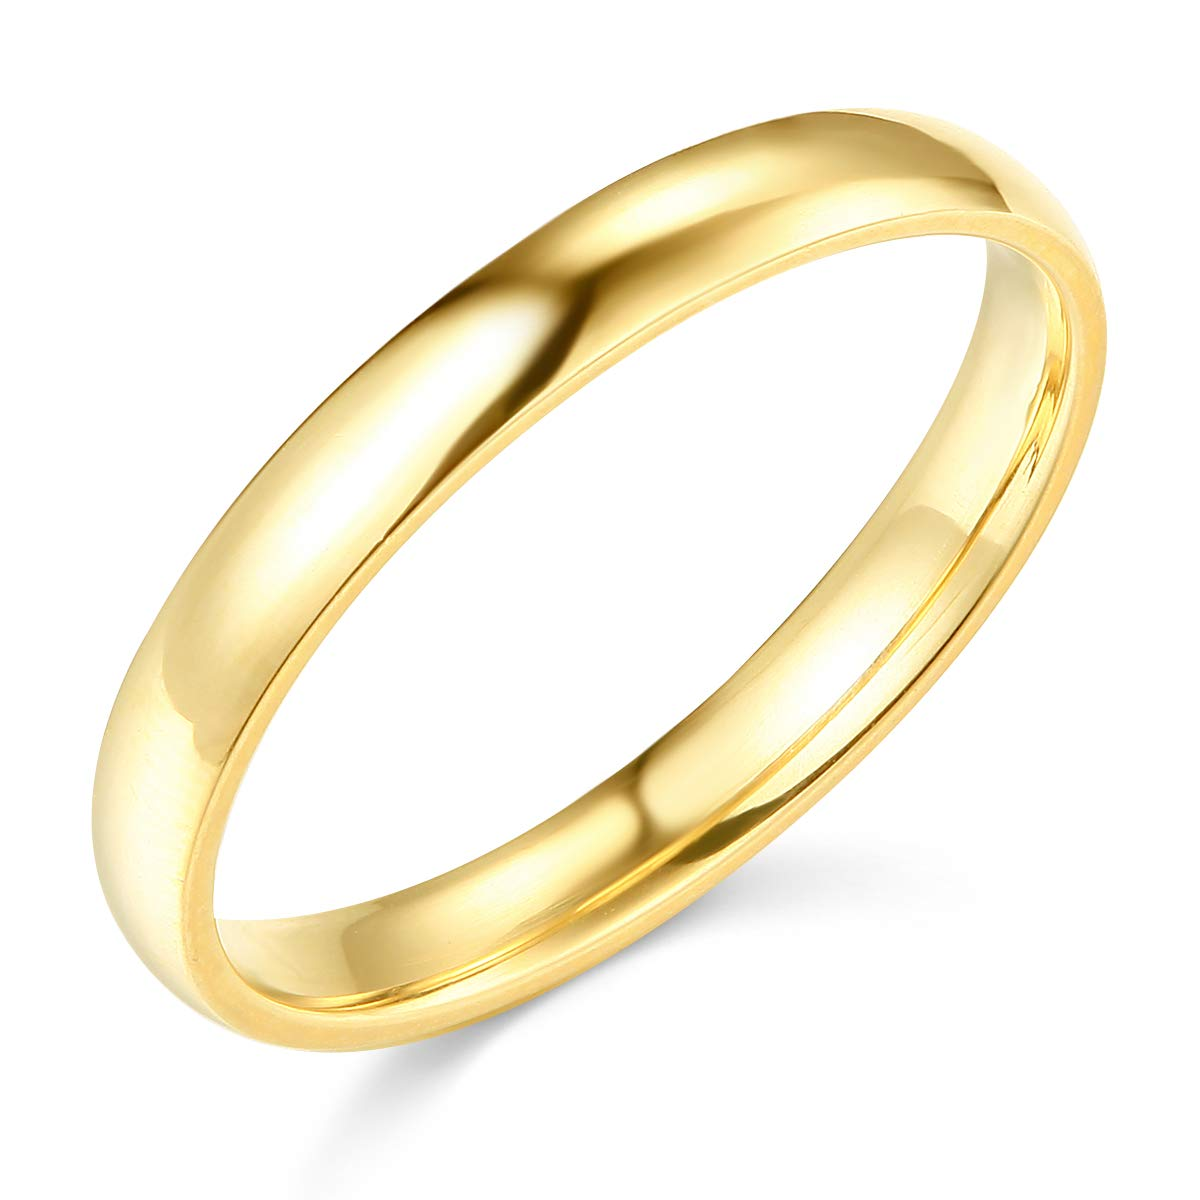 Wellingsale Ladies 14k Yellow Gold Solid 3mm CLASSIC FIT Traditional Wedding Band Ring - Size 7.5